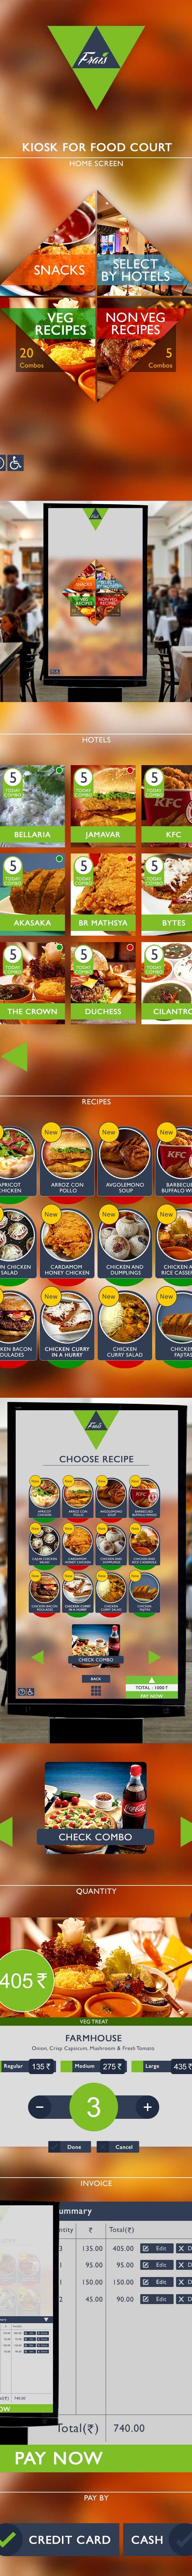 Kiosk UI/UX Design for Food Court on Behance